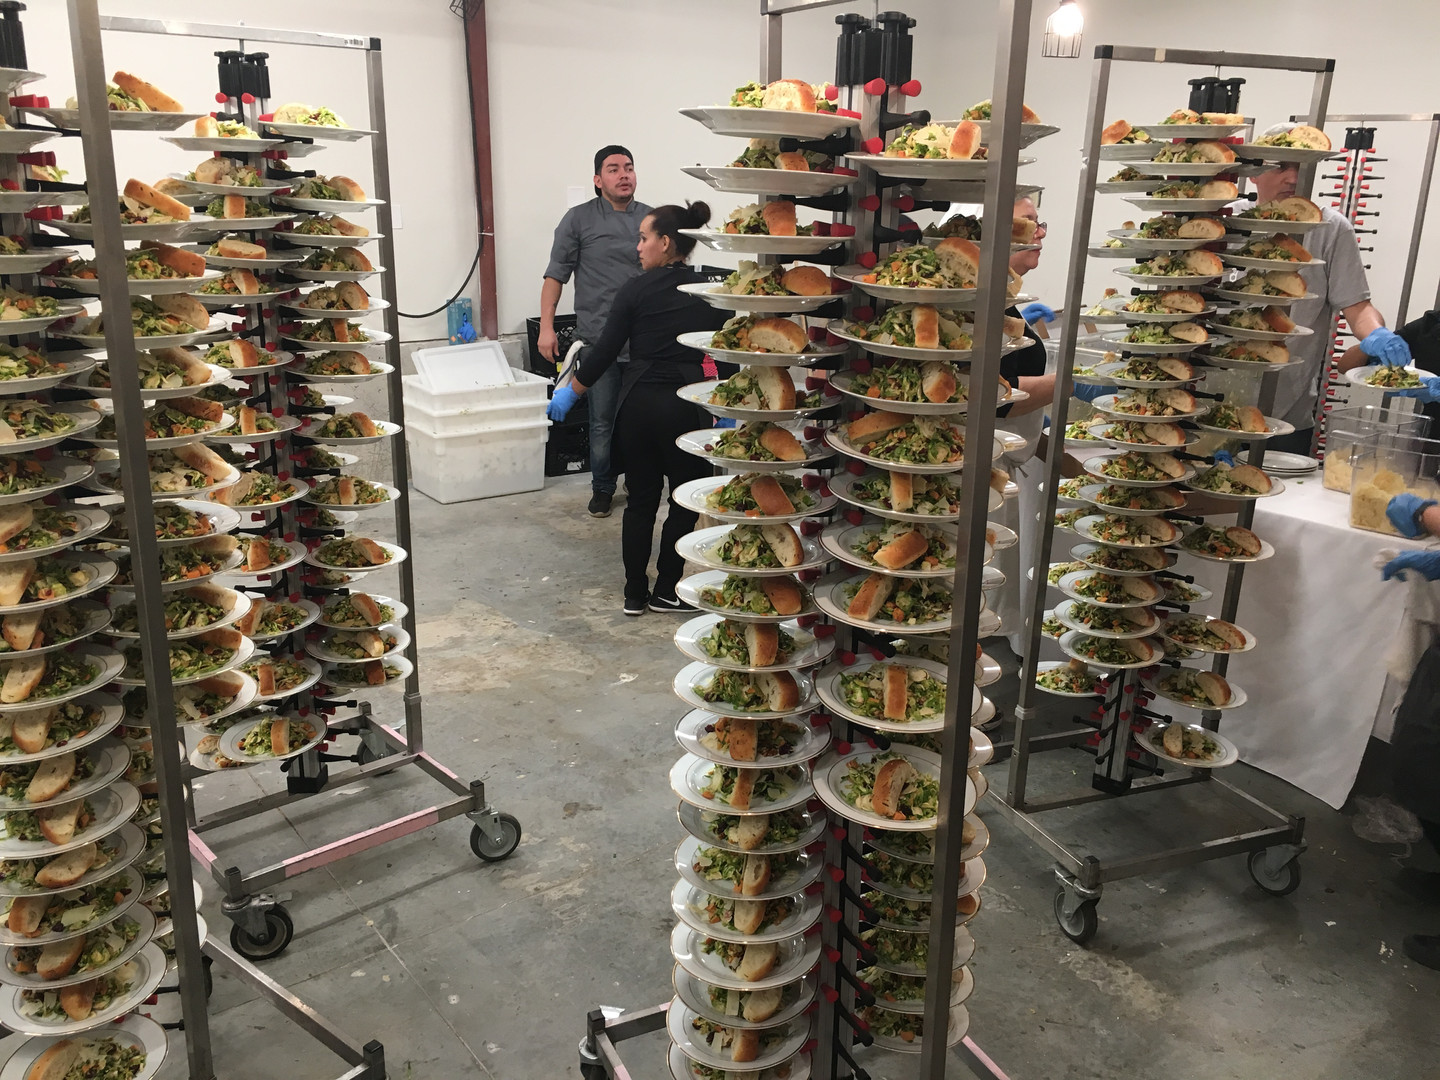 Lots and Lots of plates